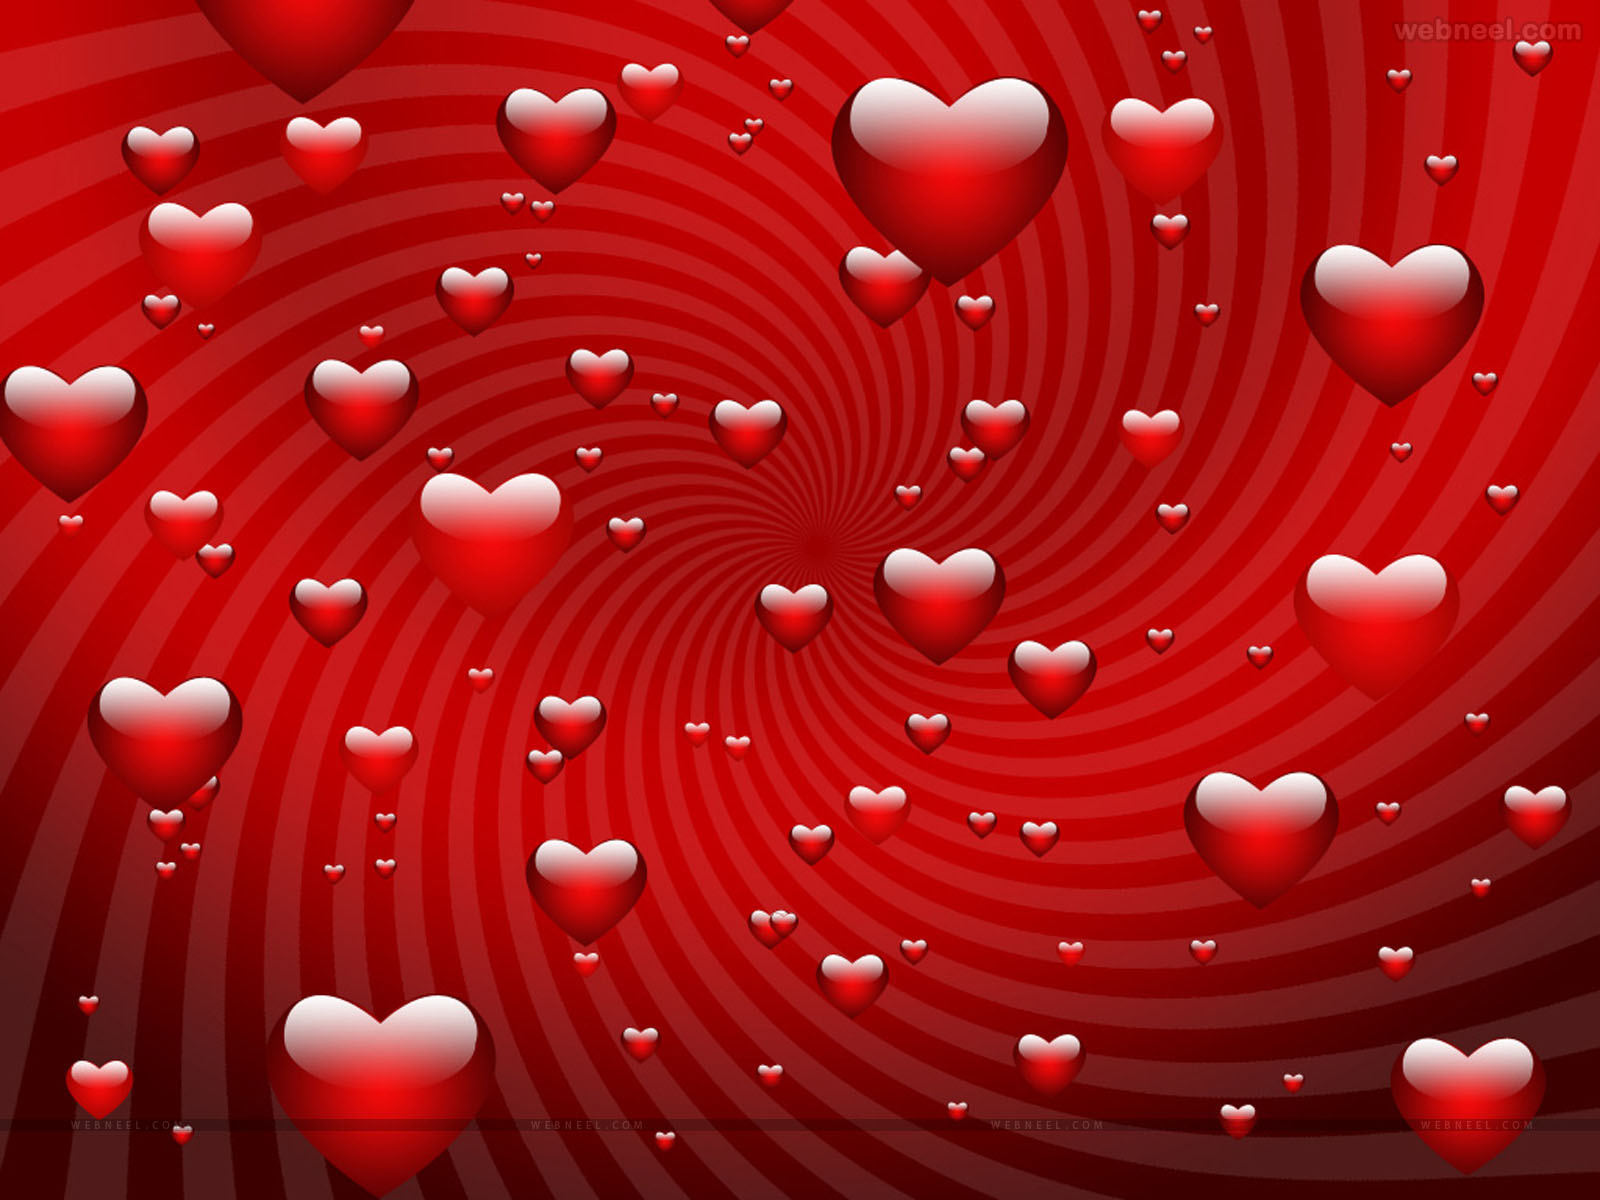 Love Wallpapers Valentine Day : 30 Beautiful Valentines Day Wallpapers for your desktop